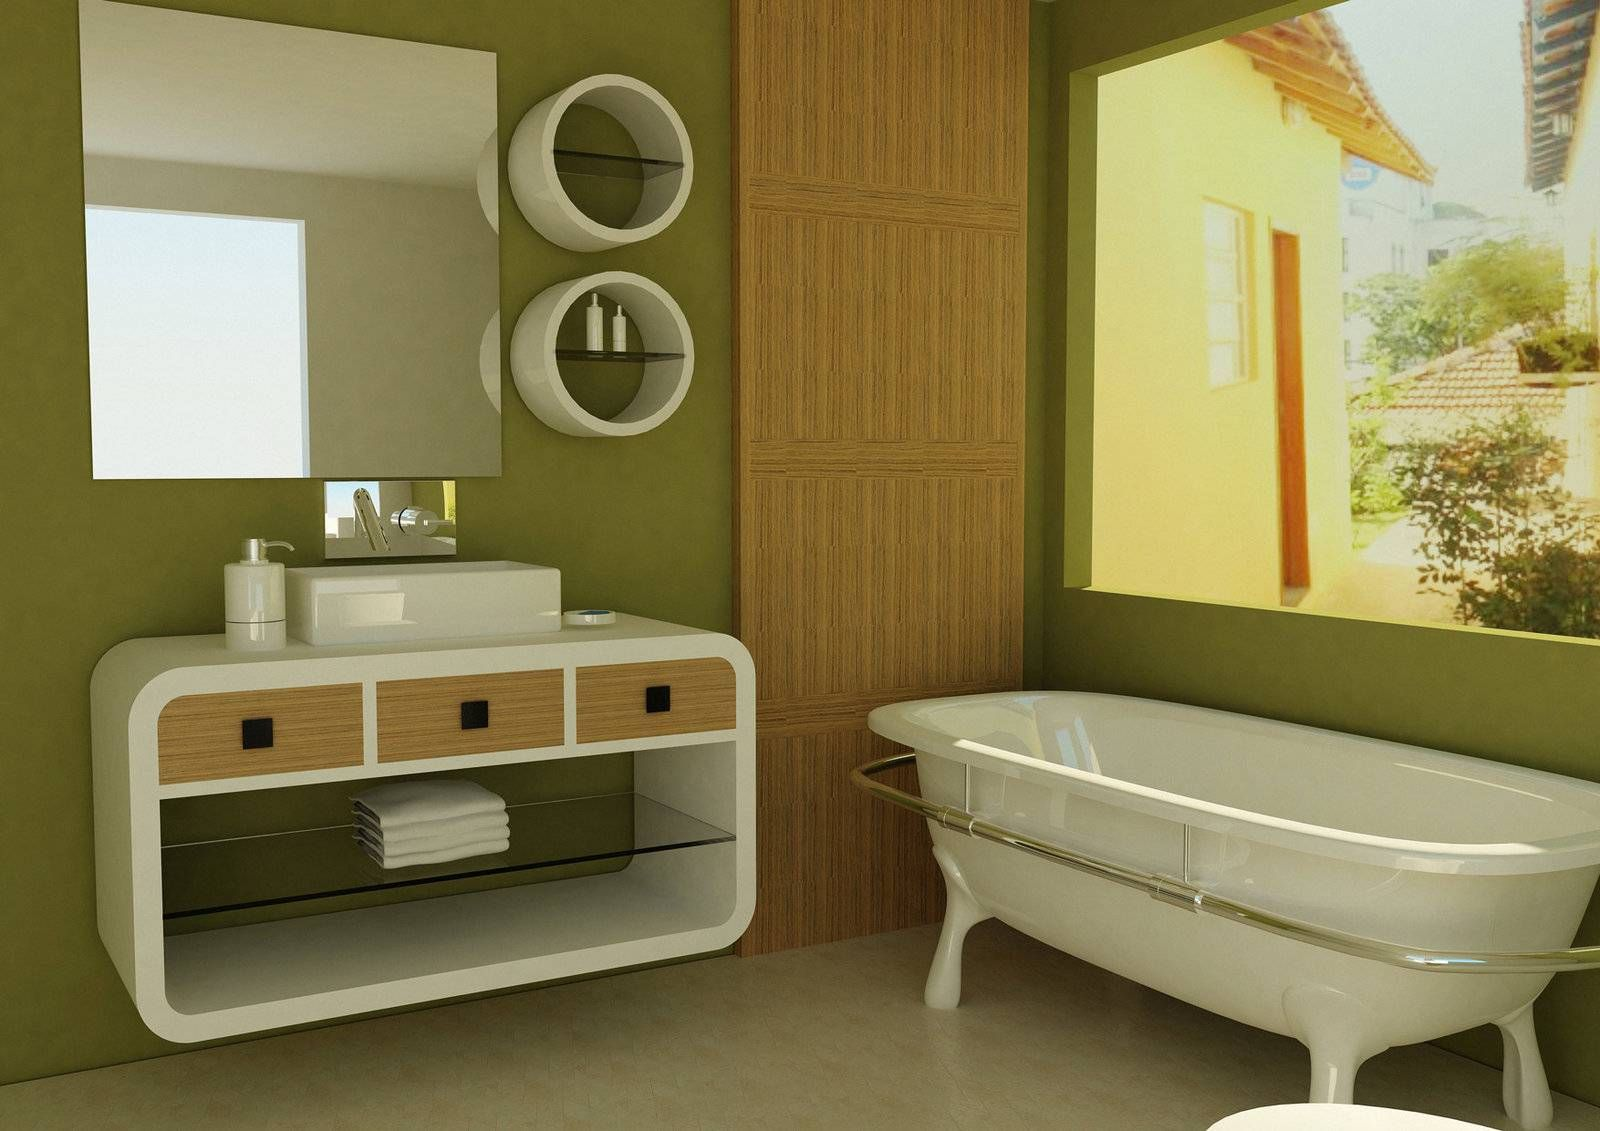 Photo Gallery For Website Green wall with white bathroom vanity and bathtub for cool green bathroom My house Pinterest Green walls White bathroom vanities and D cor ideas